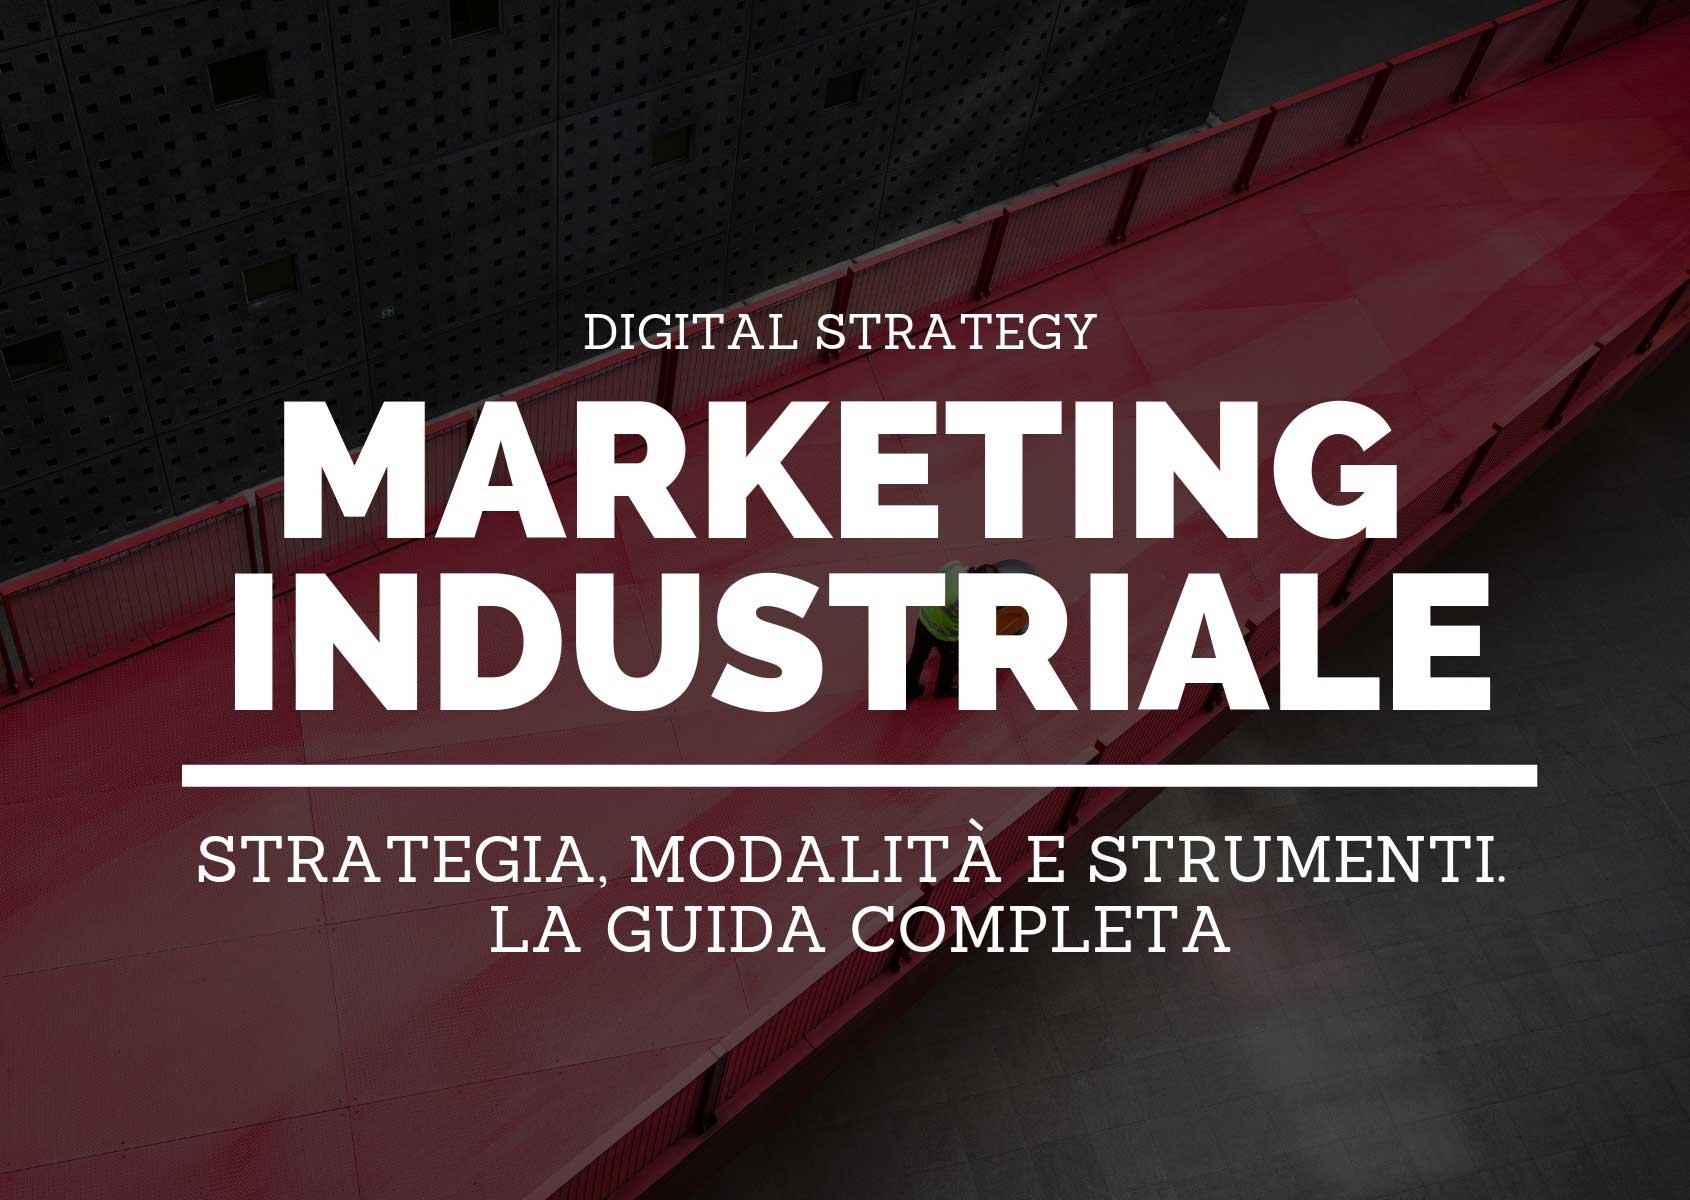 Marketing industriale: strategia, modalità e strumenti. La guida completa